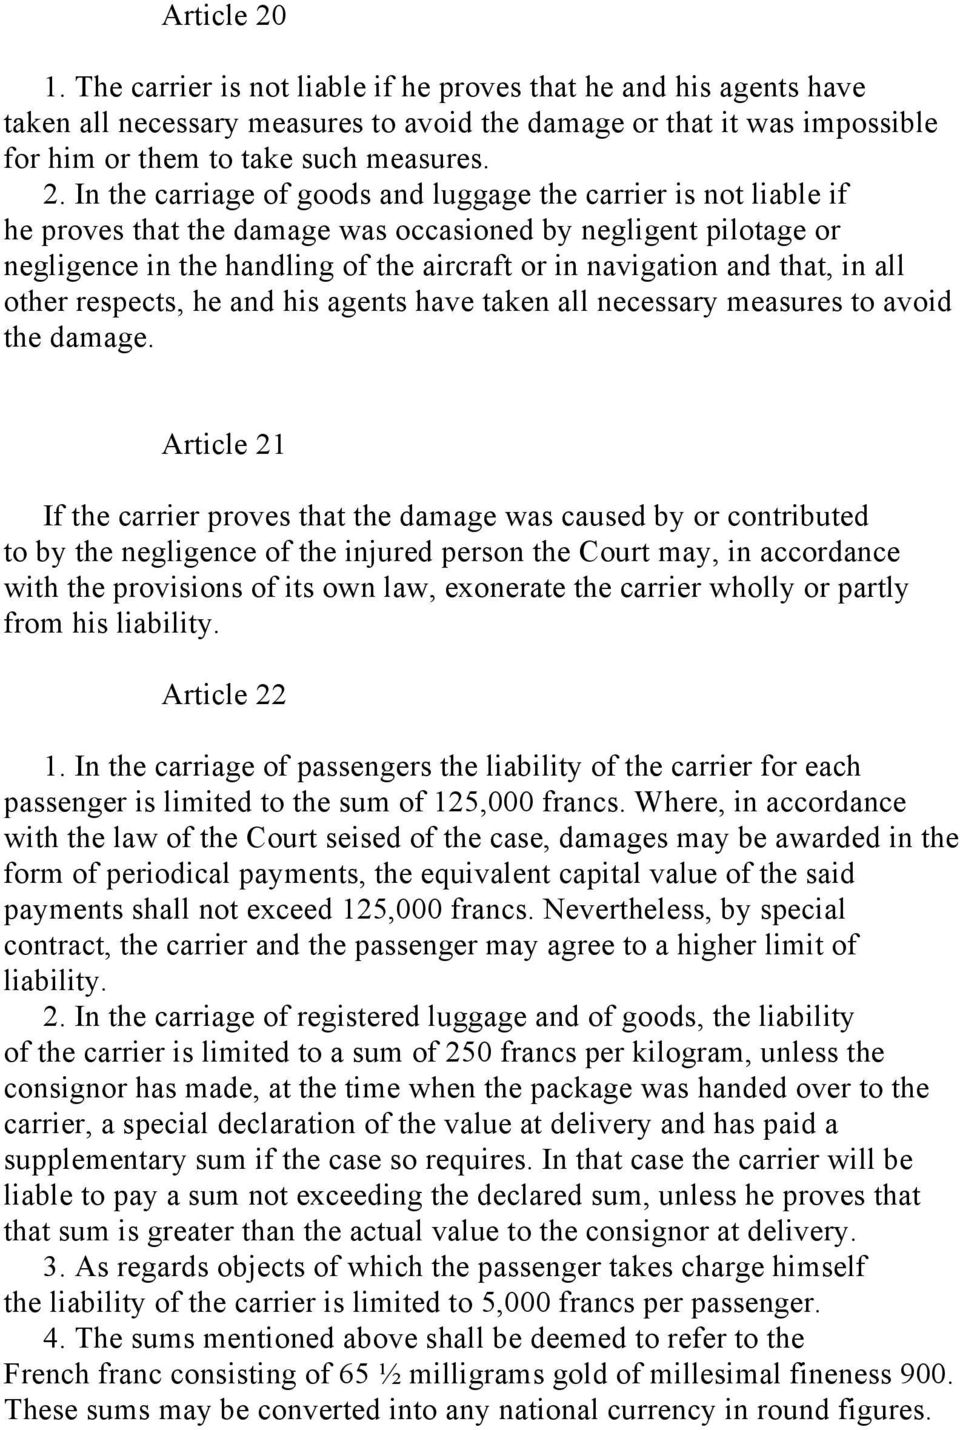 In the carriage of goods and luggage the carrier is not liable if he proves that the damage was occasioned by negligent pilotage or negligence in the handling of the aircraft or in navigation and